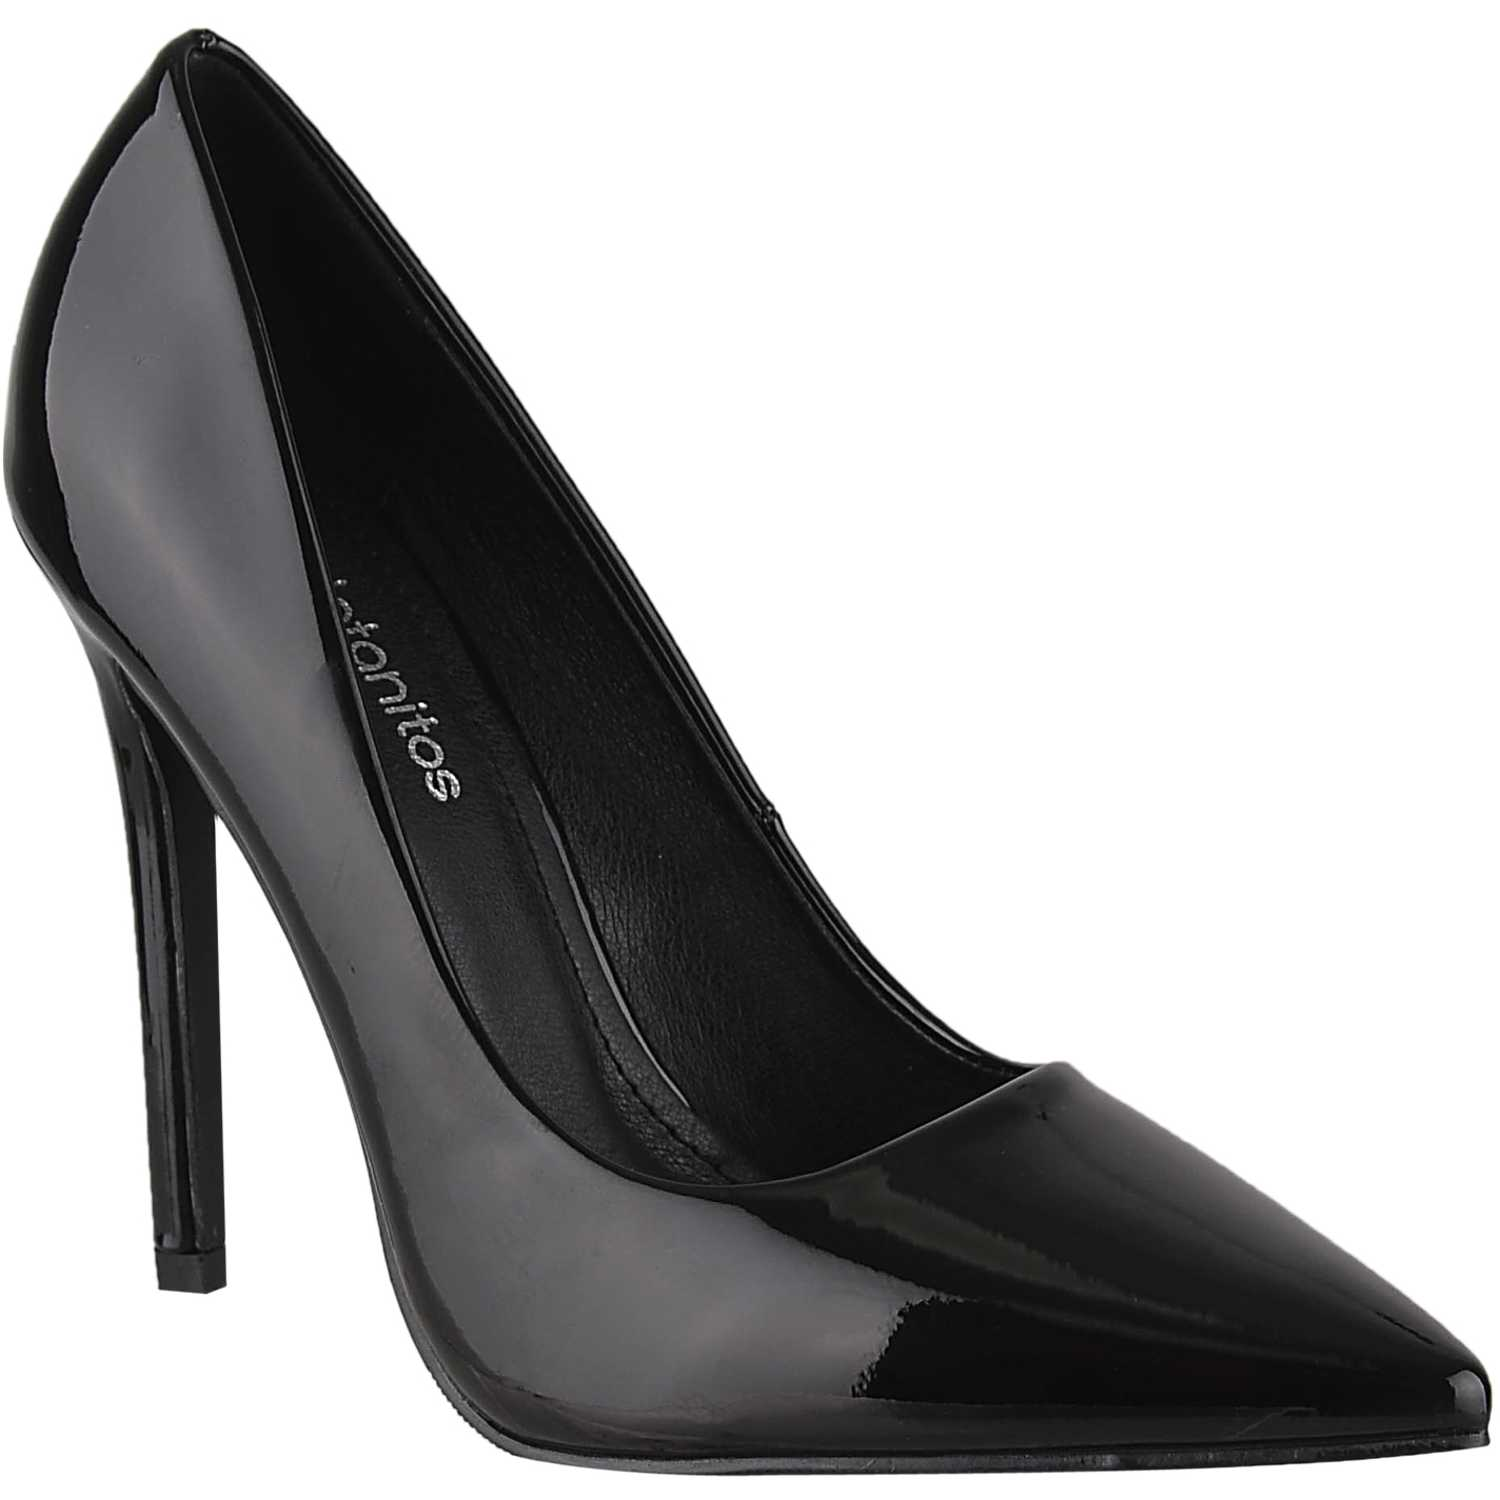 Platanitos cv 2283 Negro Estiletos y Pumps